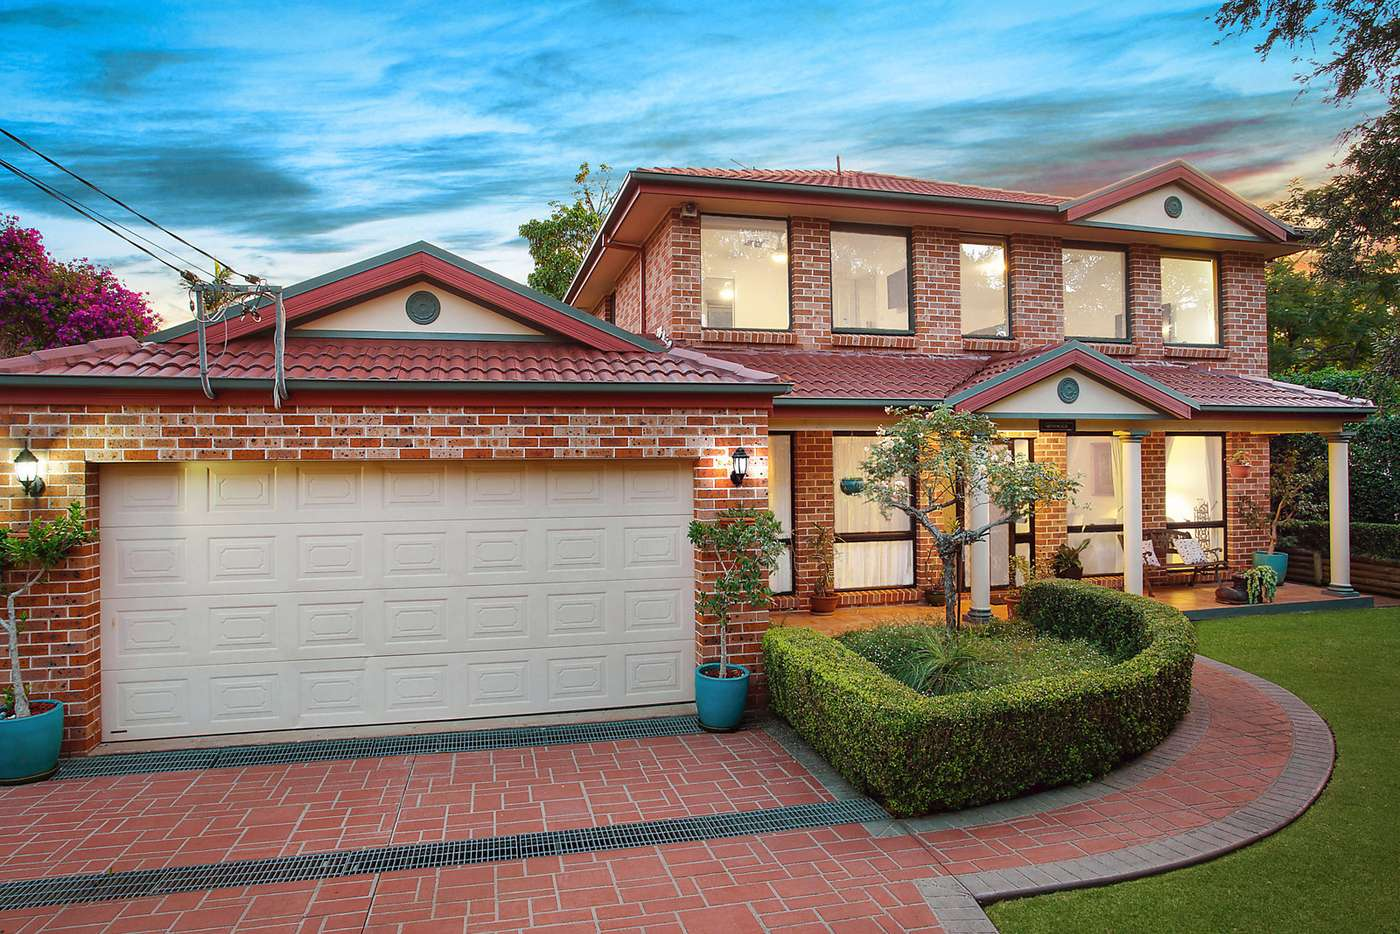 Main view of Homely house listing, 16 Thorn Street, Ryde NSW 2112